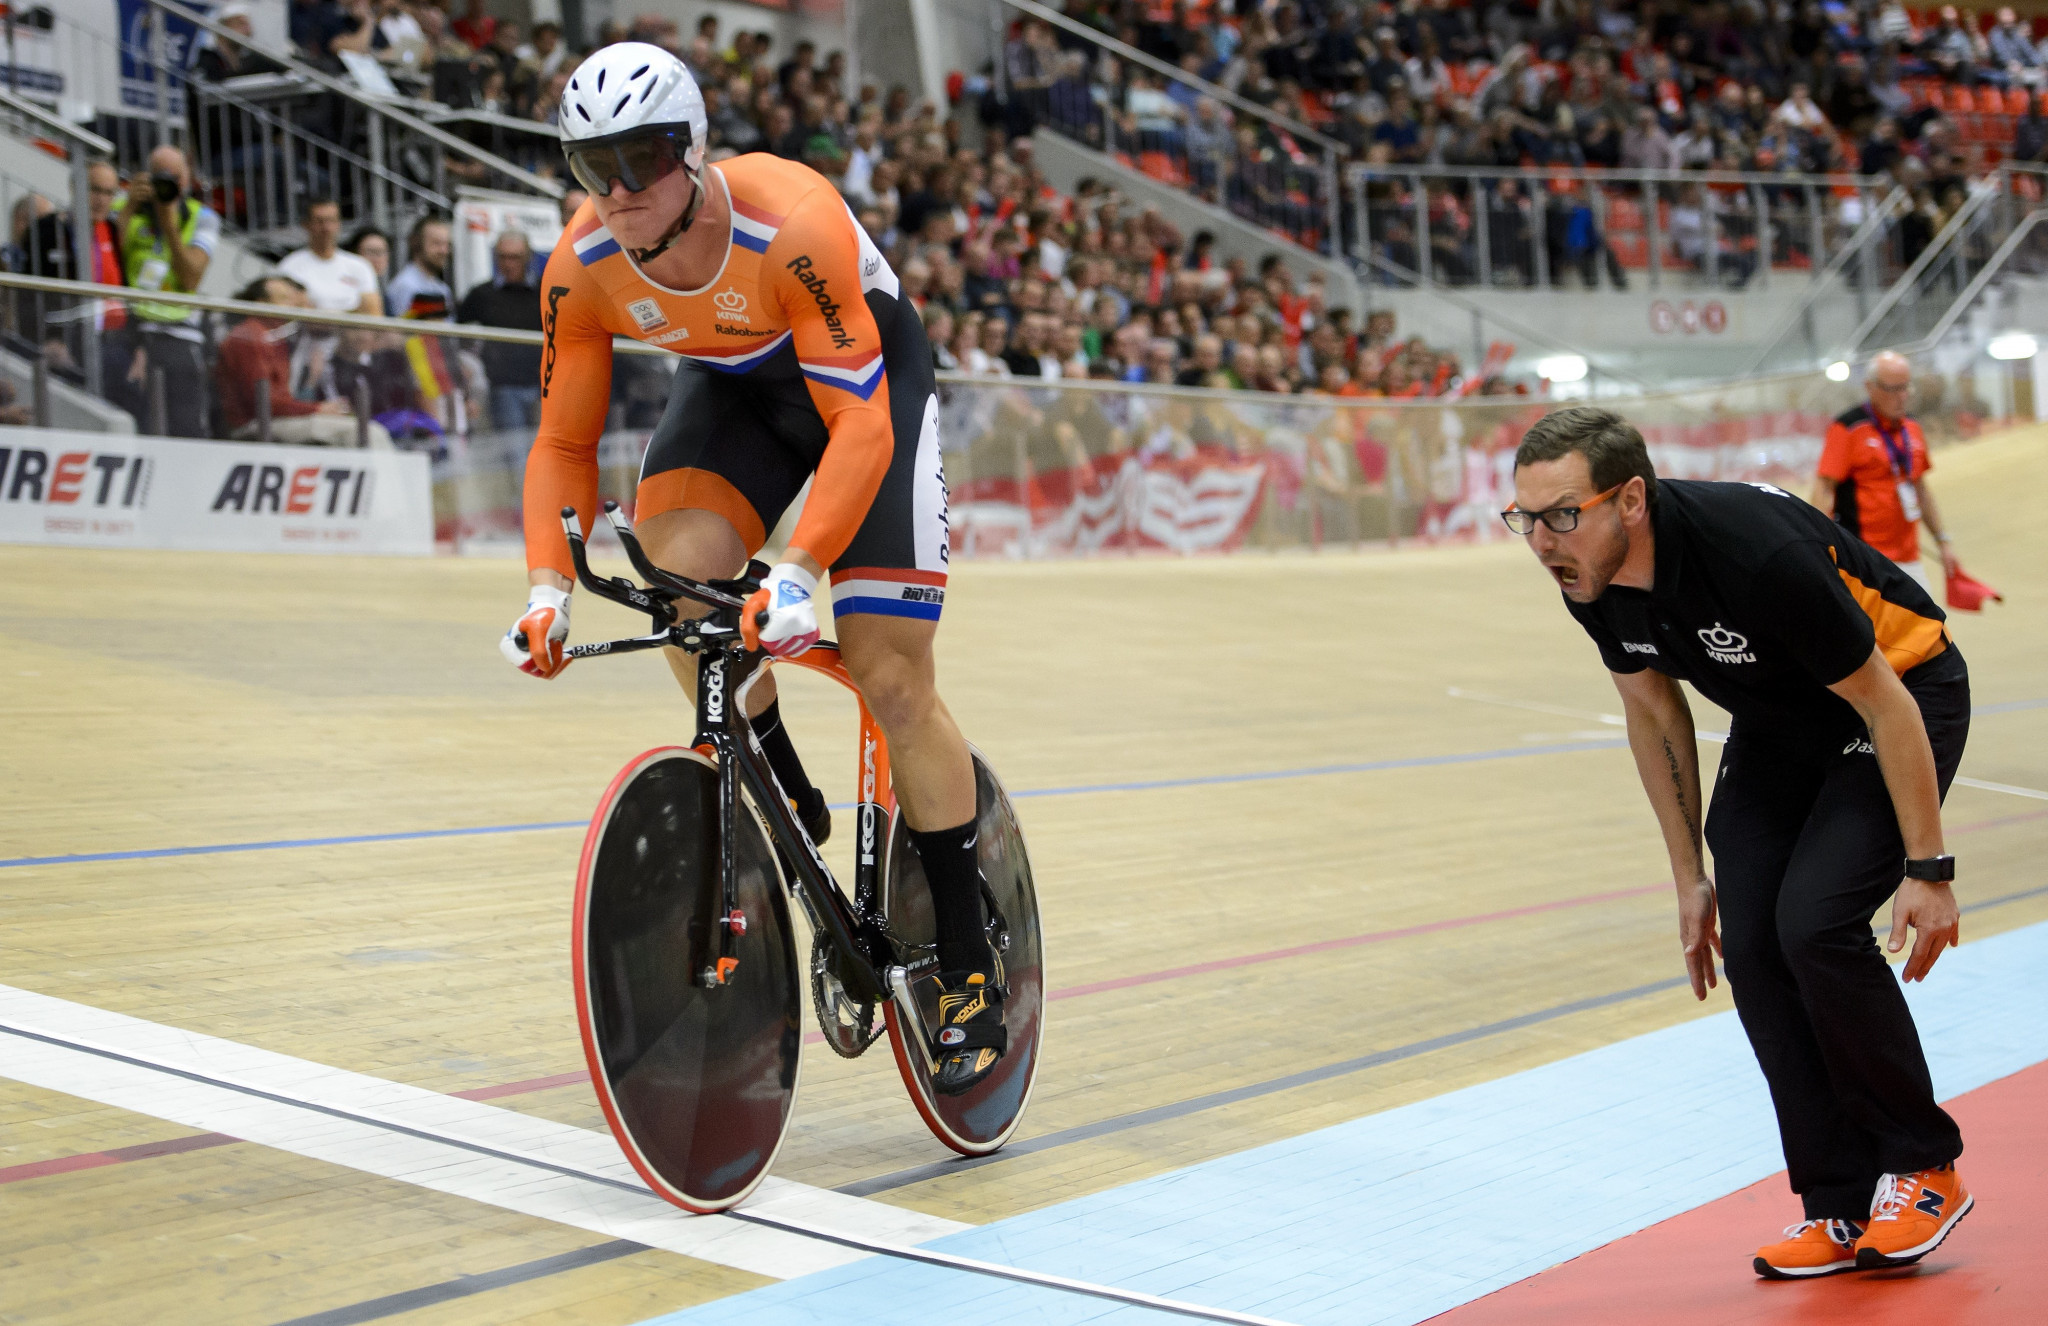 Grenchen hosted the European Championships back in 2015 ©Getty Images